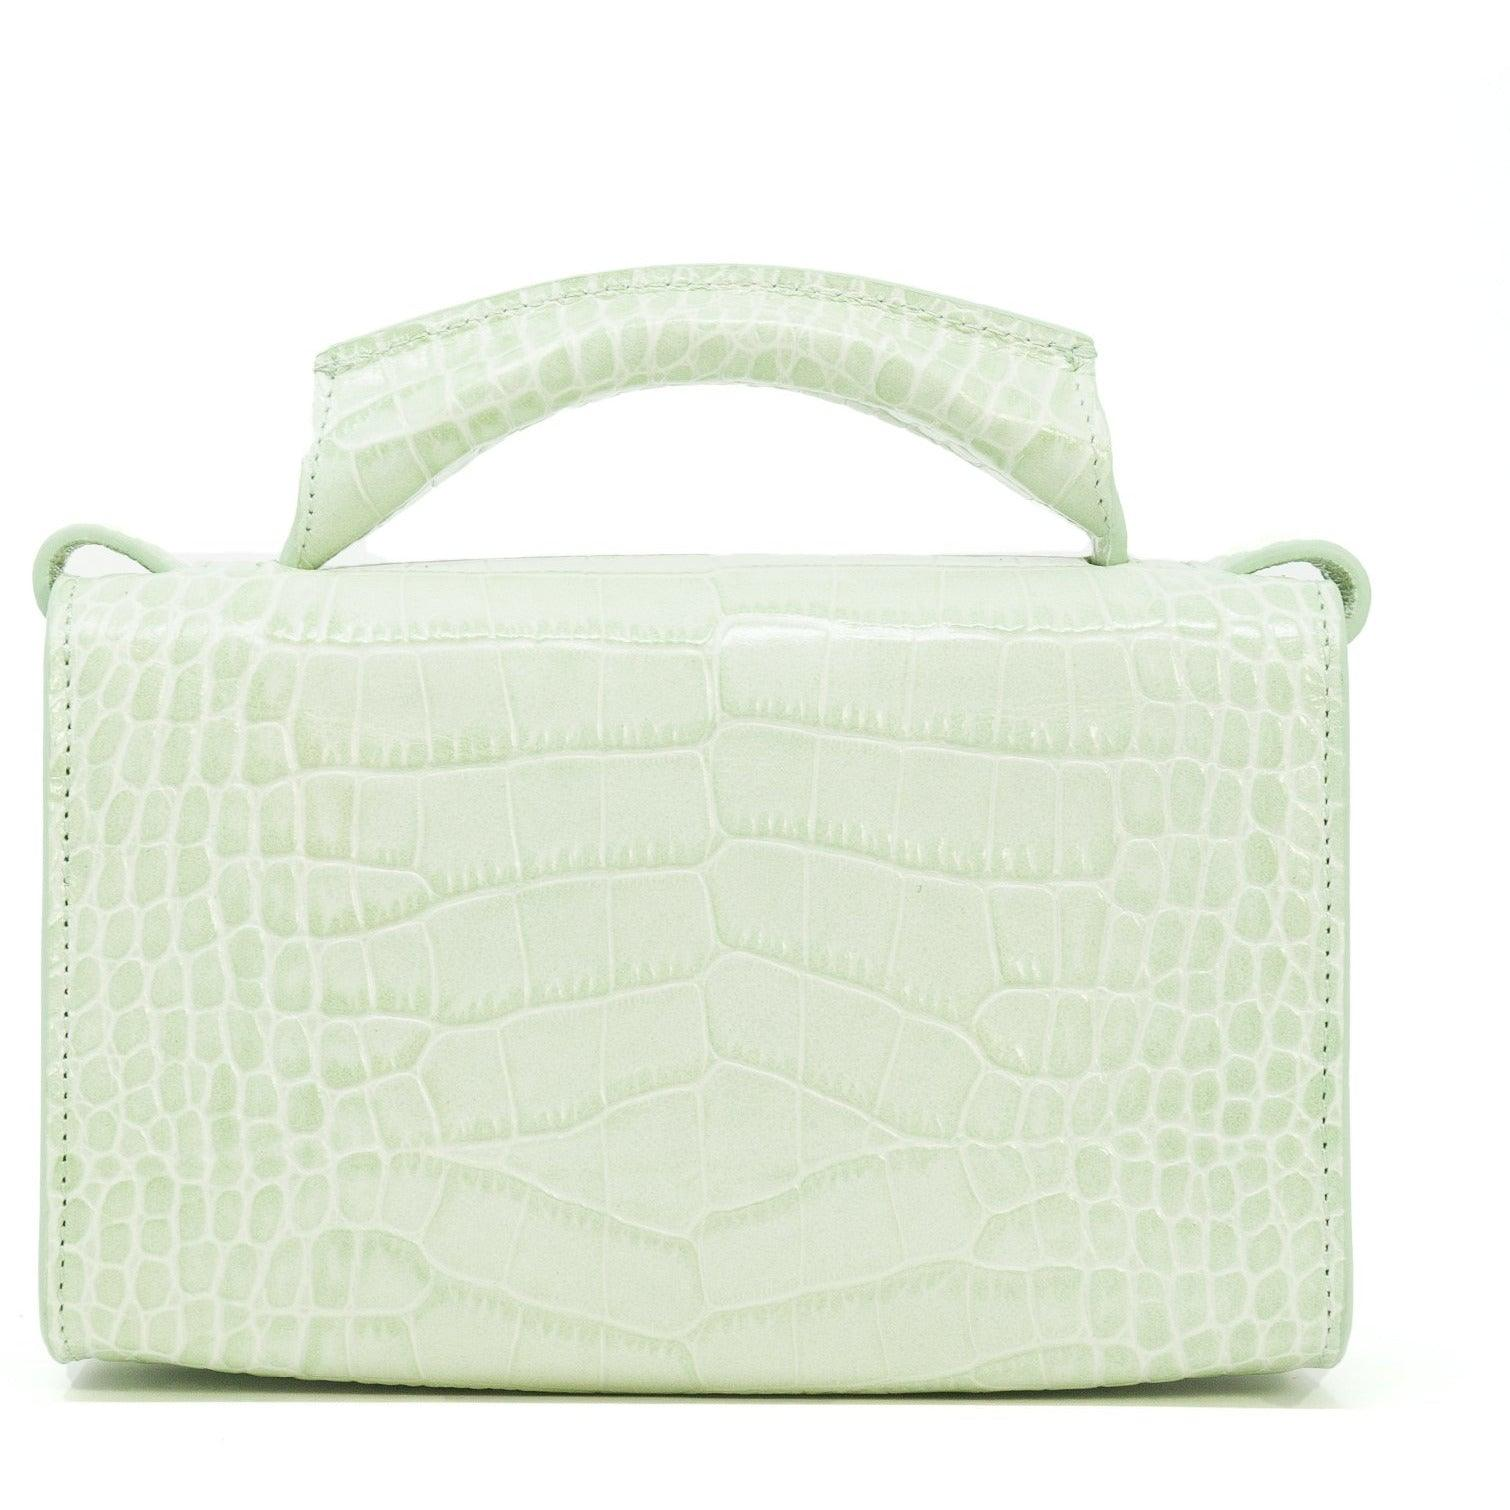 Women Top Handle Printed Crocodile Bag in Green